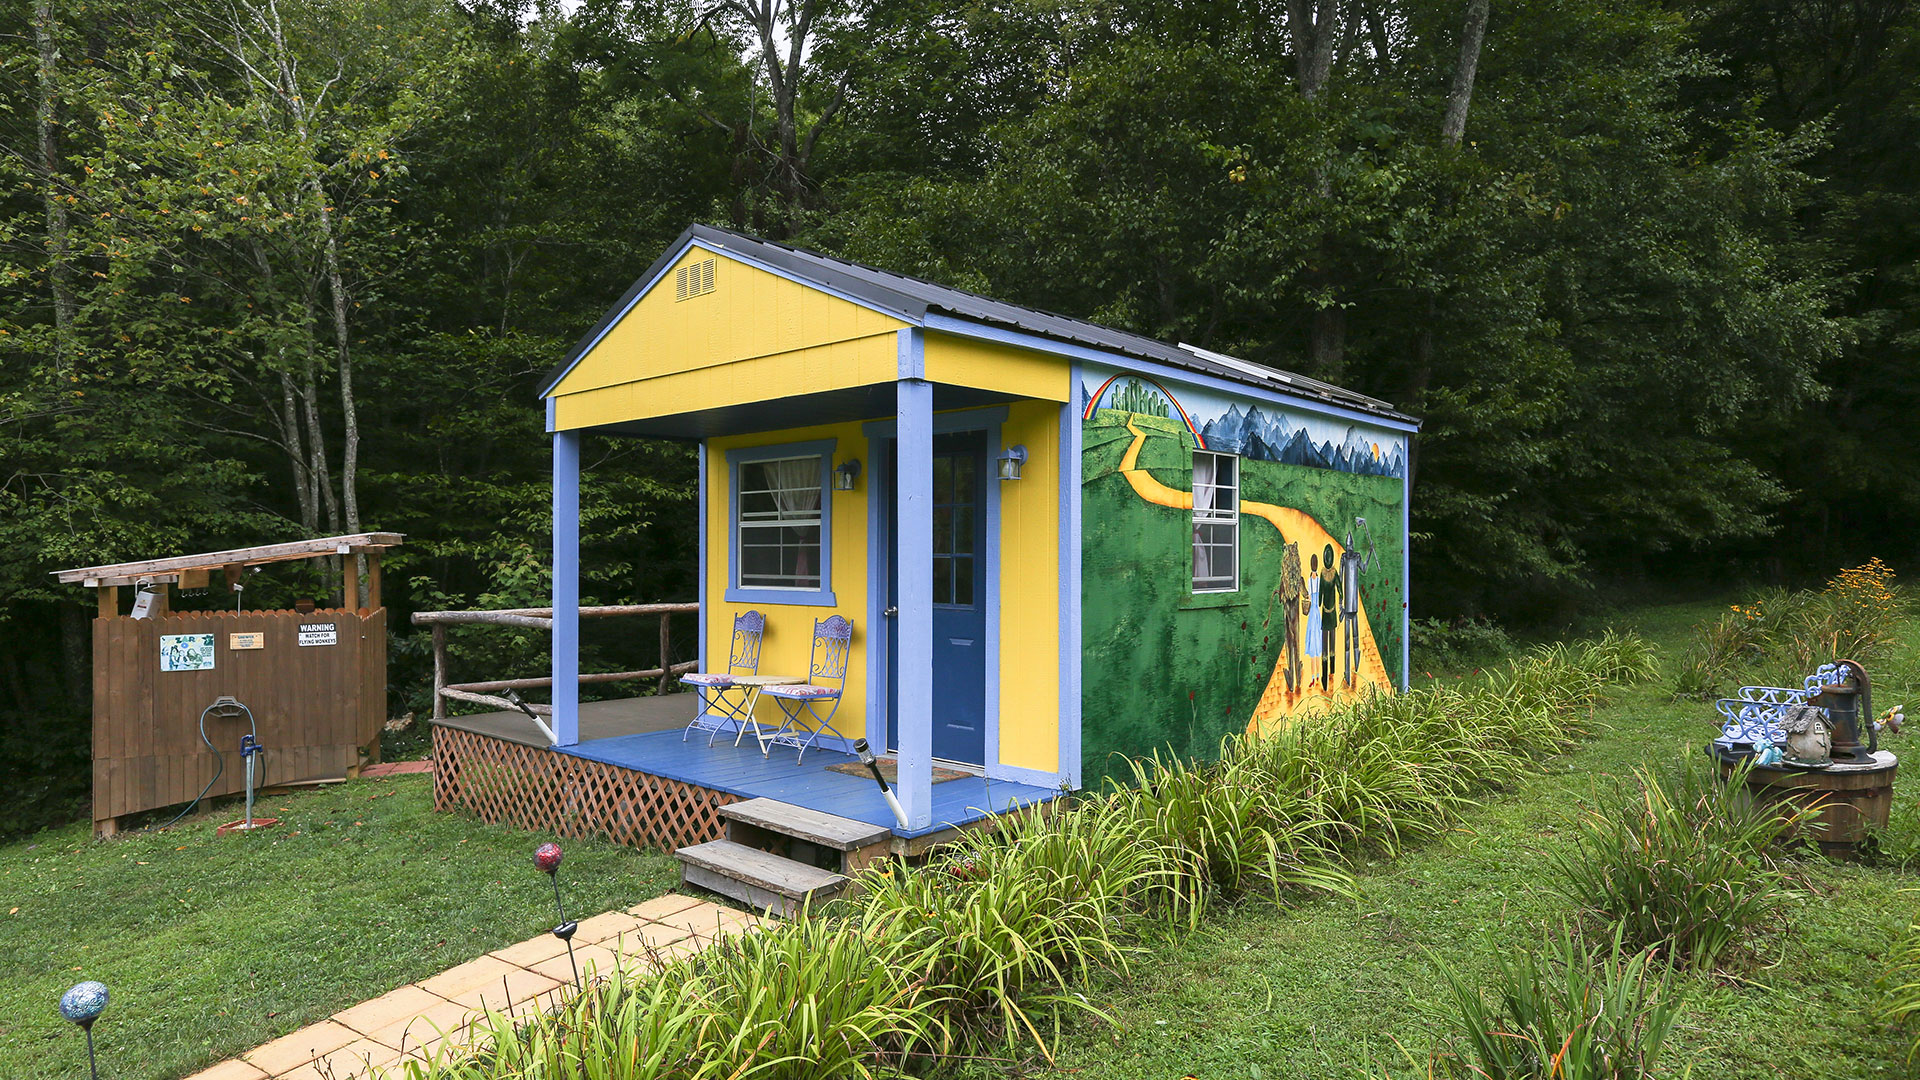 There's No Place Like this Wizard of Oz-Themed Tiny Home